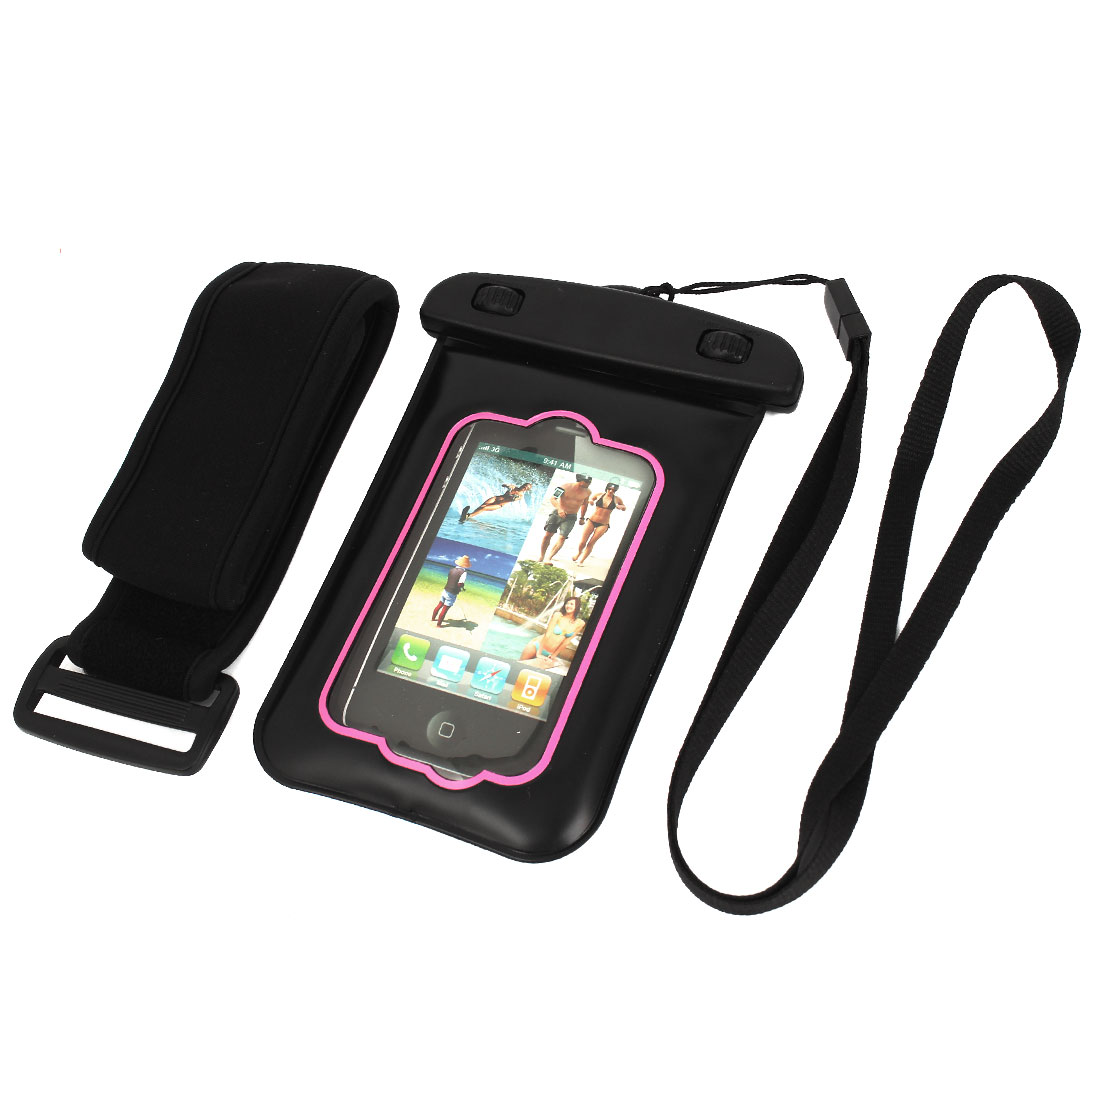 Unique Bargains Waterproof Case Dry Bag Skin Cover Pouch Protector for 3.5  Mobile Phone